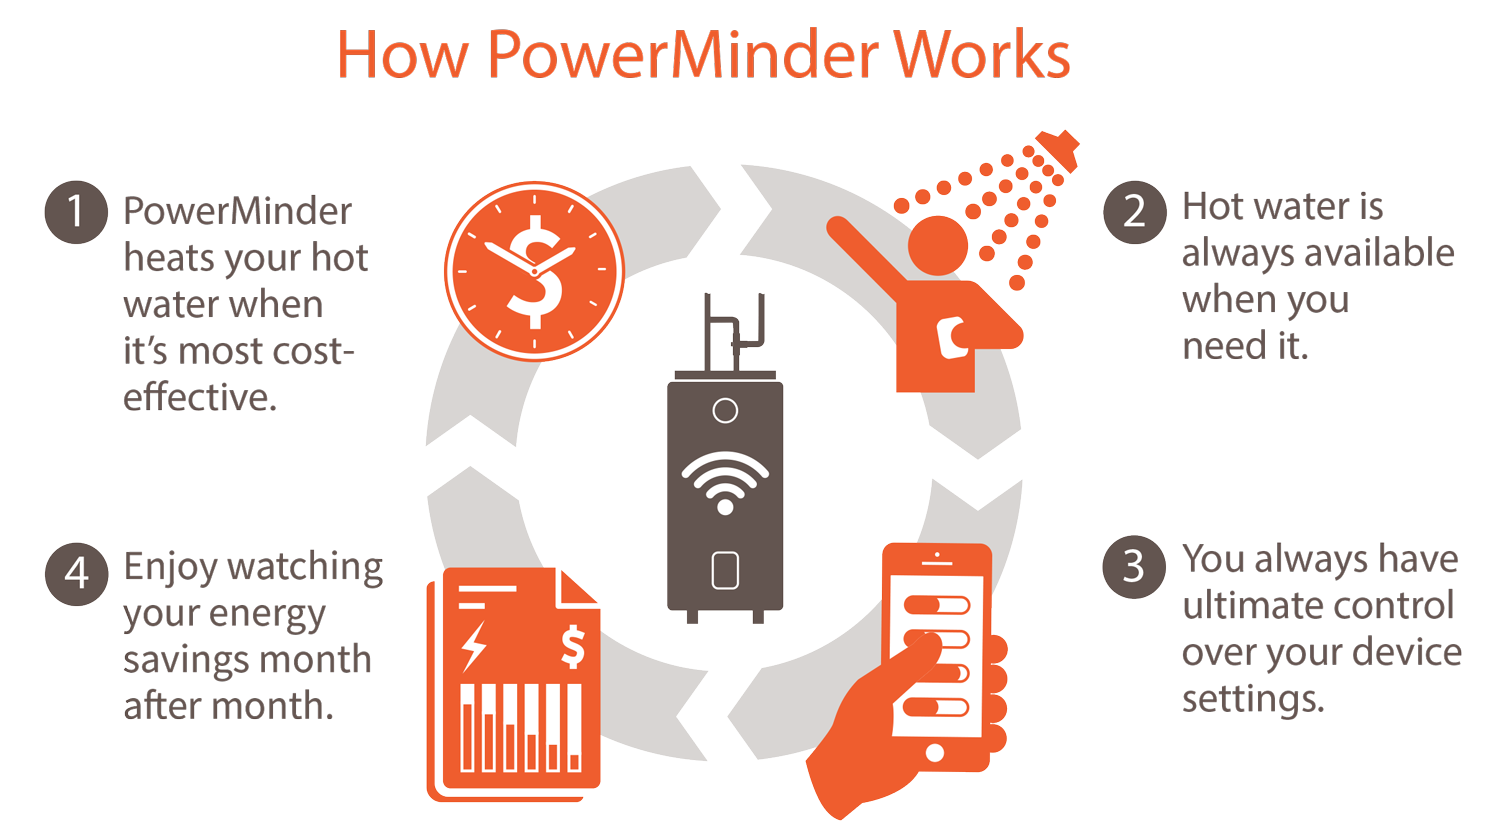 Infographic showing how PowerMinder works